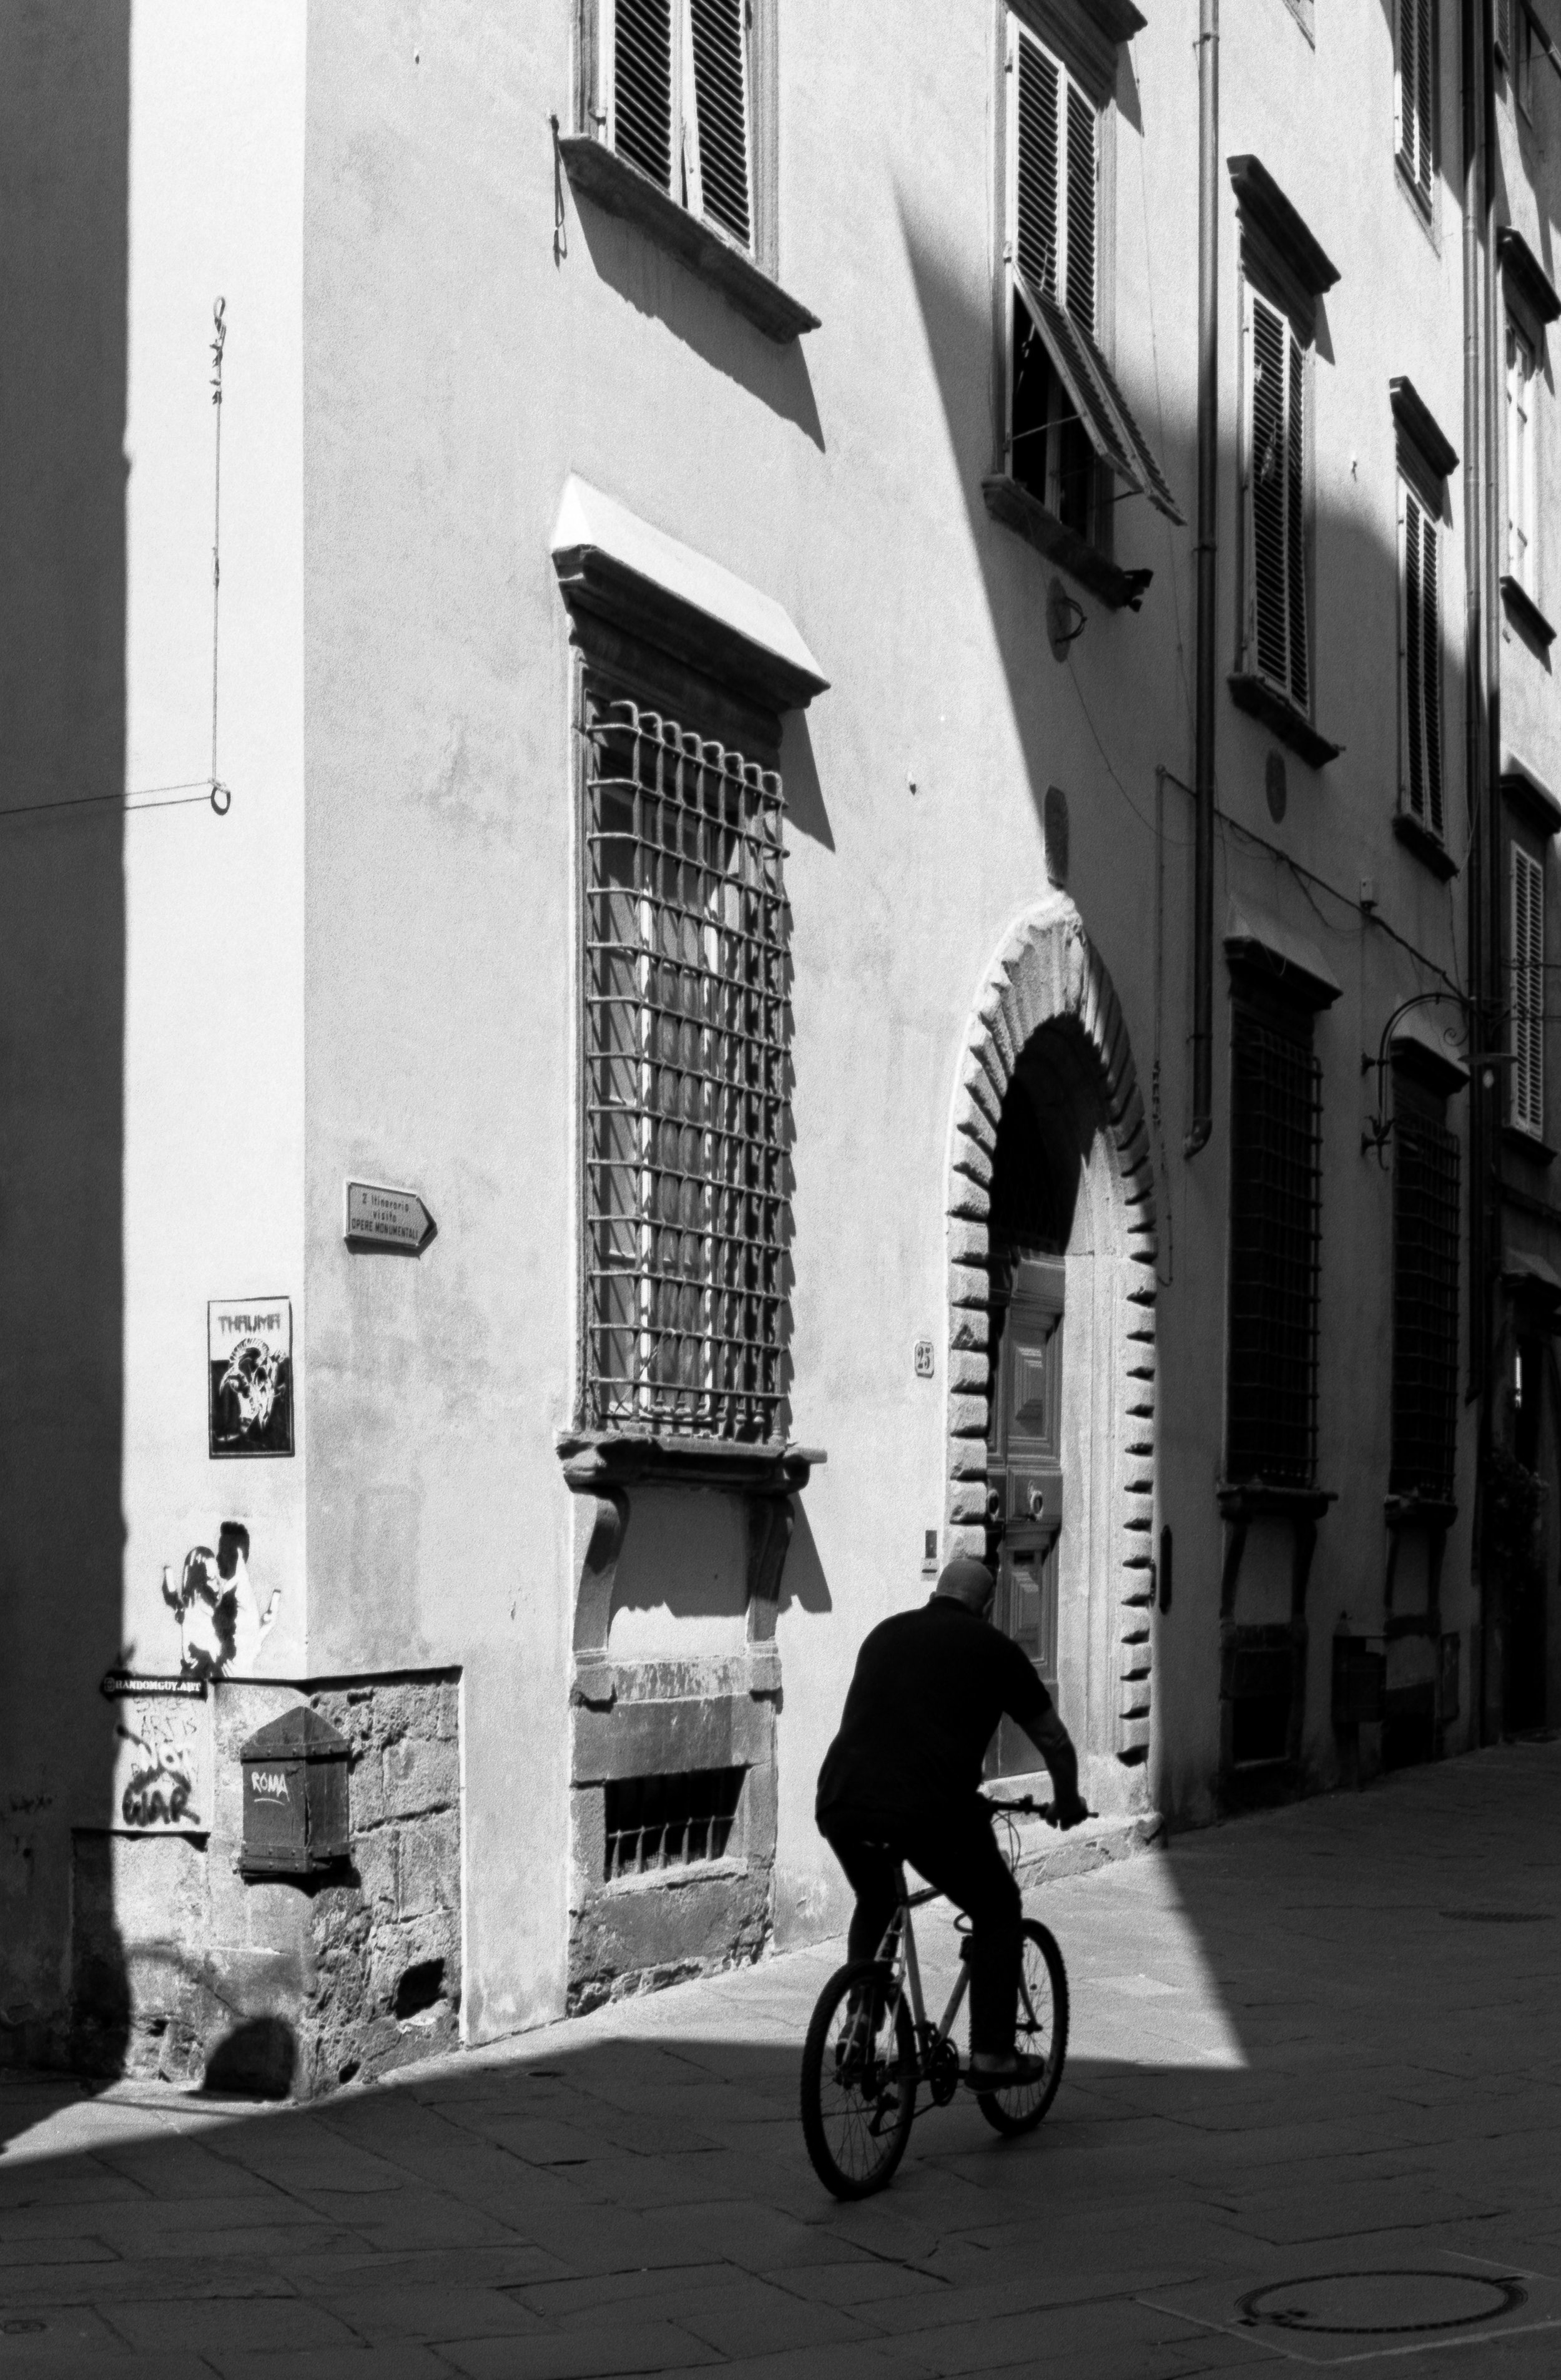 Lucca. Italy. 2019.